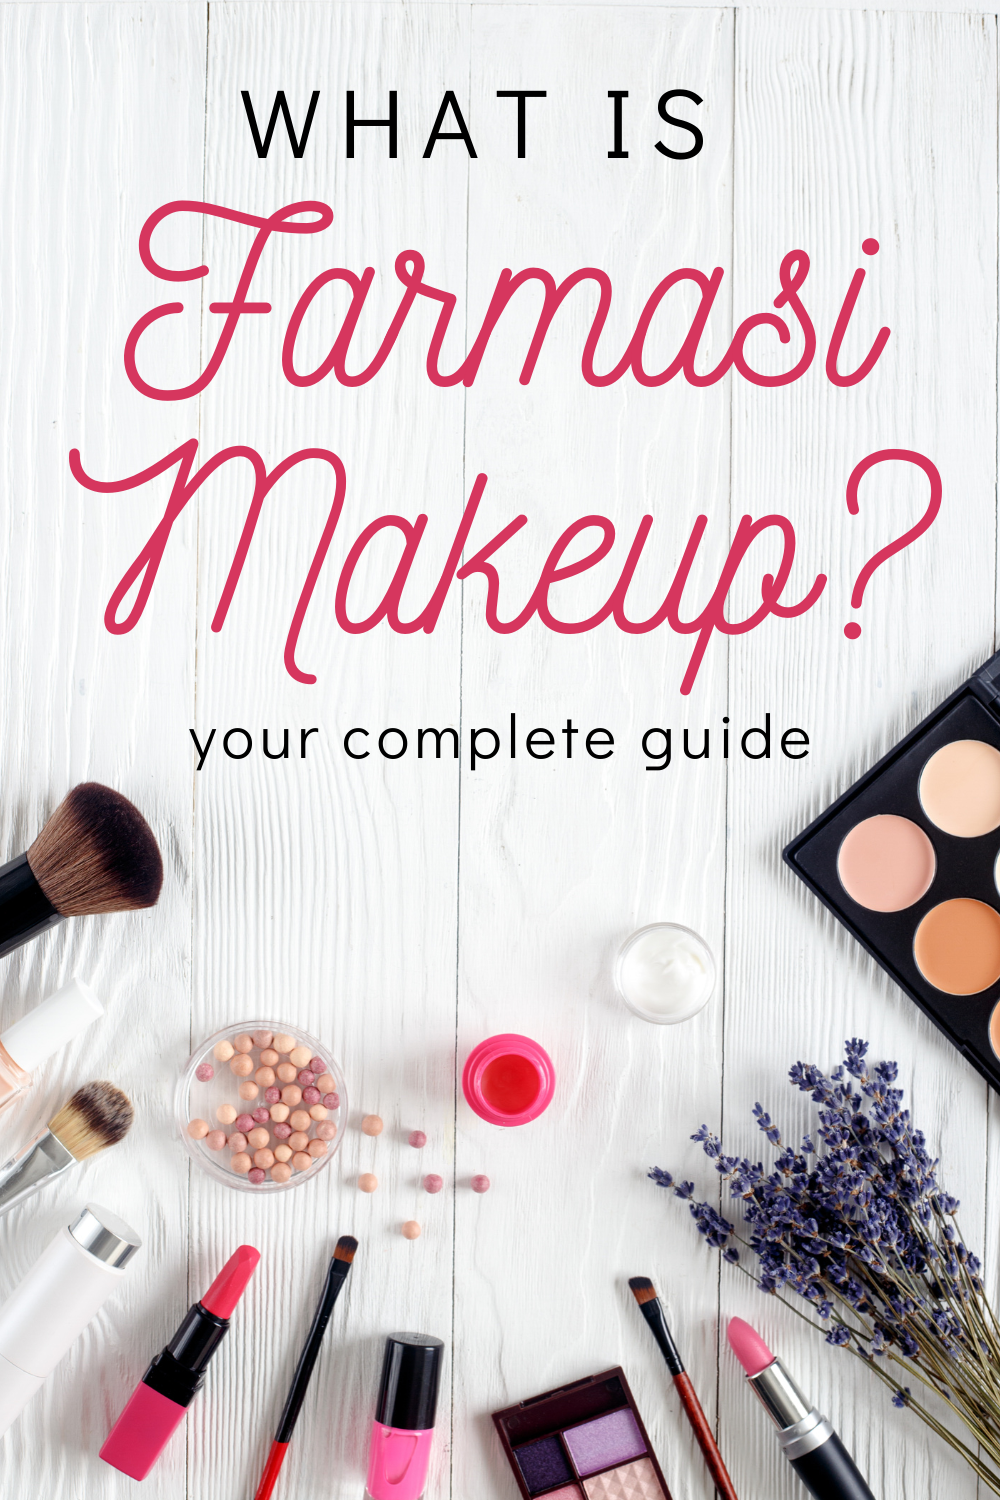 Your complete guide to Farmasi Makeup. European Standards